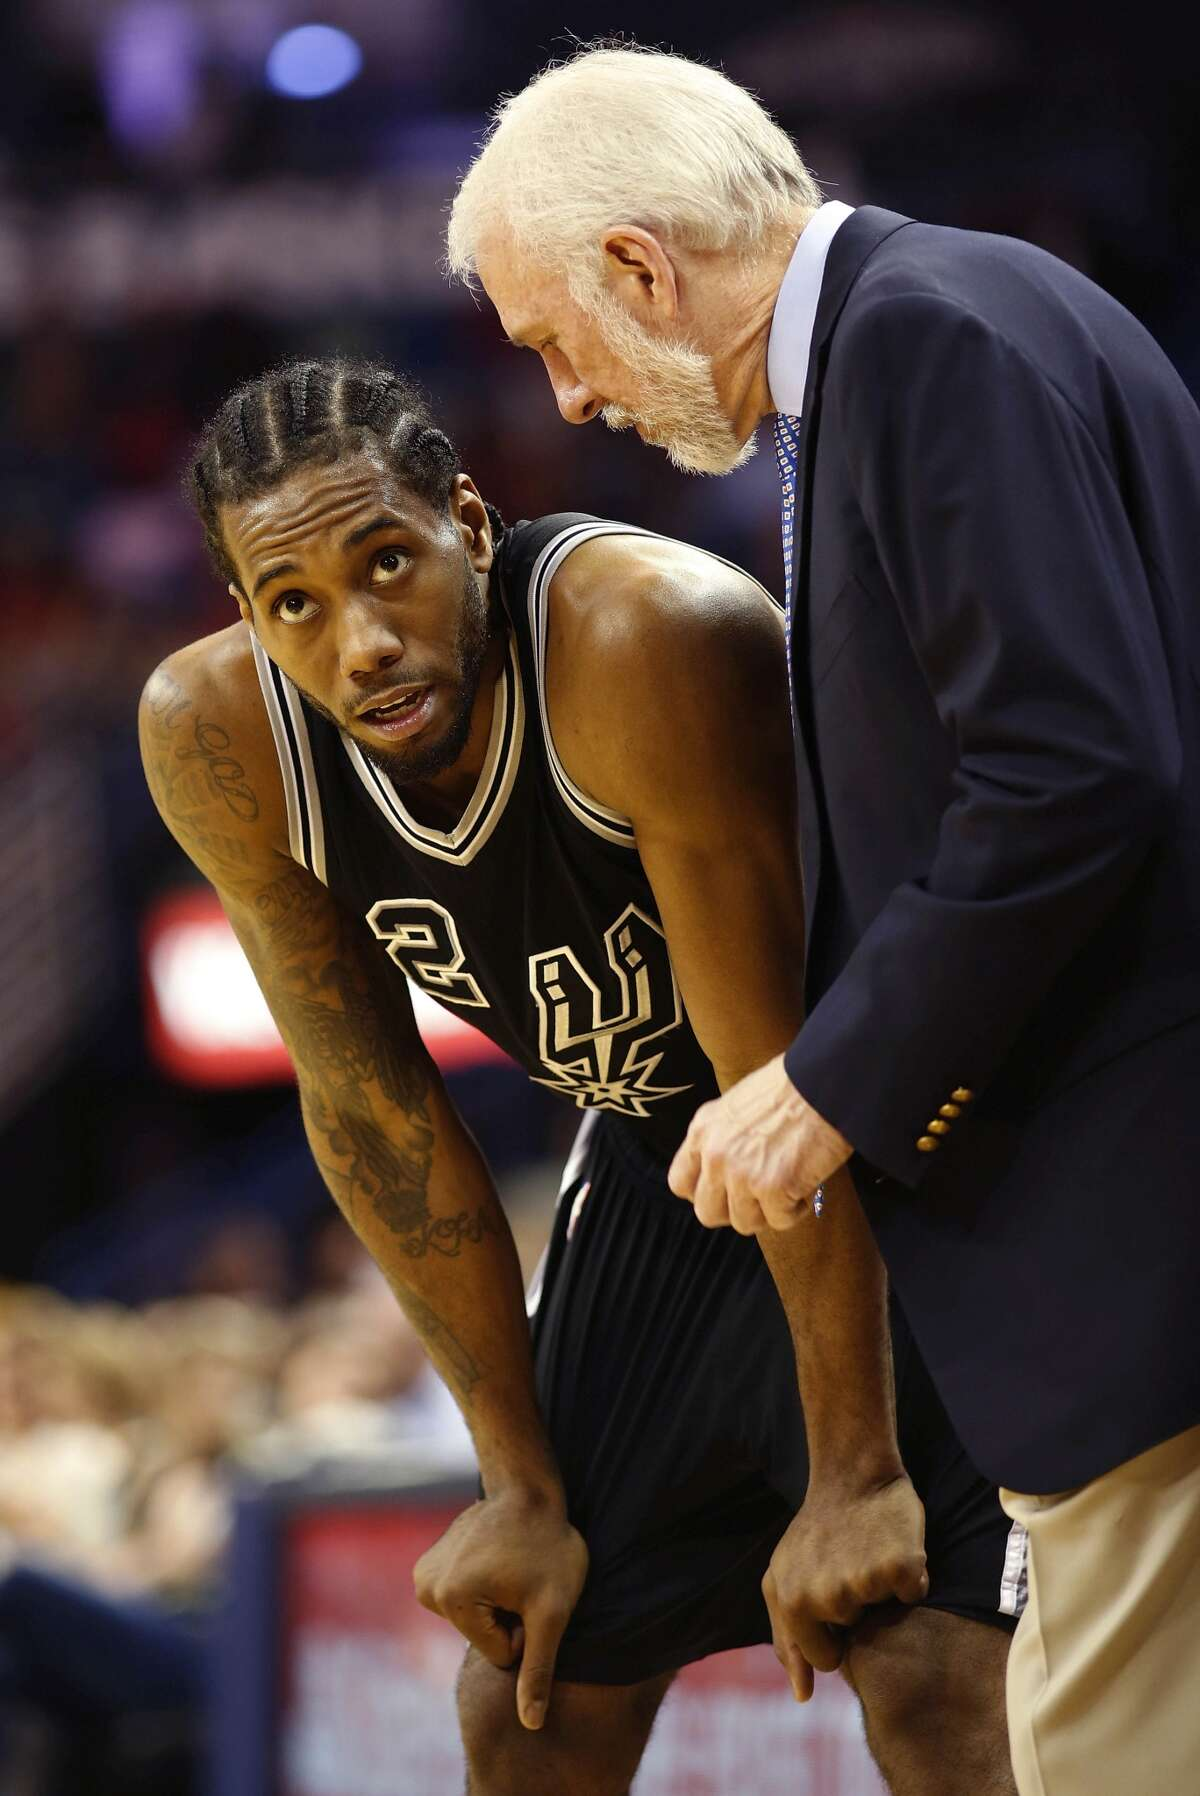 San Antonio Spurs forwardKawhiLeonardtalks to San Antonio Spurs head coach Gregg Popovich between plays in the second half of an NBA basketball game in New Orleans, Thursday, March 3, 2016. The Spurs beat the Pelicans 94-86. (APPhoto/Max Becherer)---